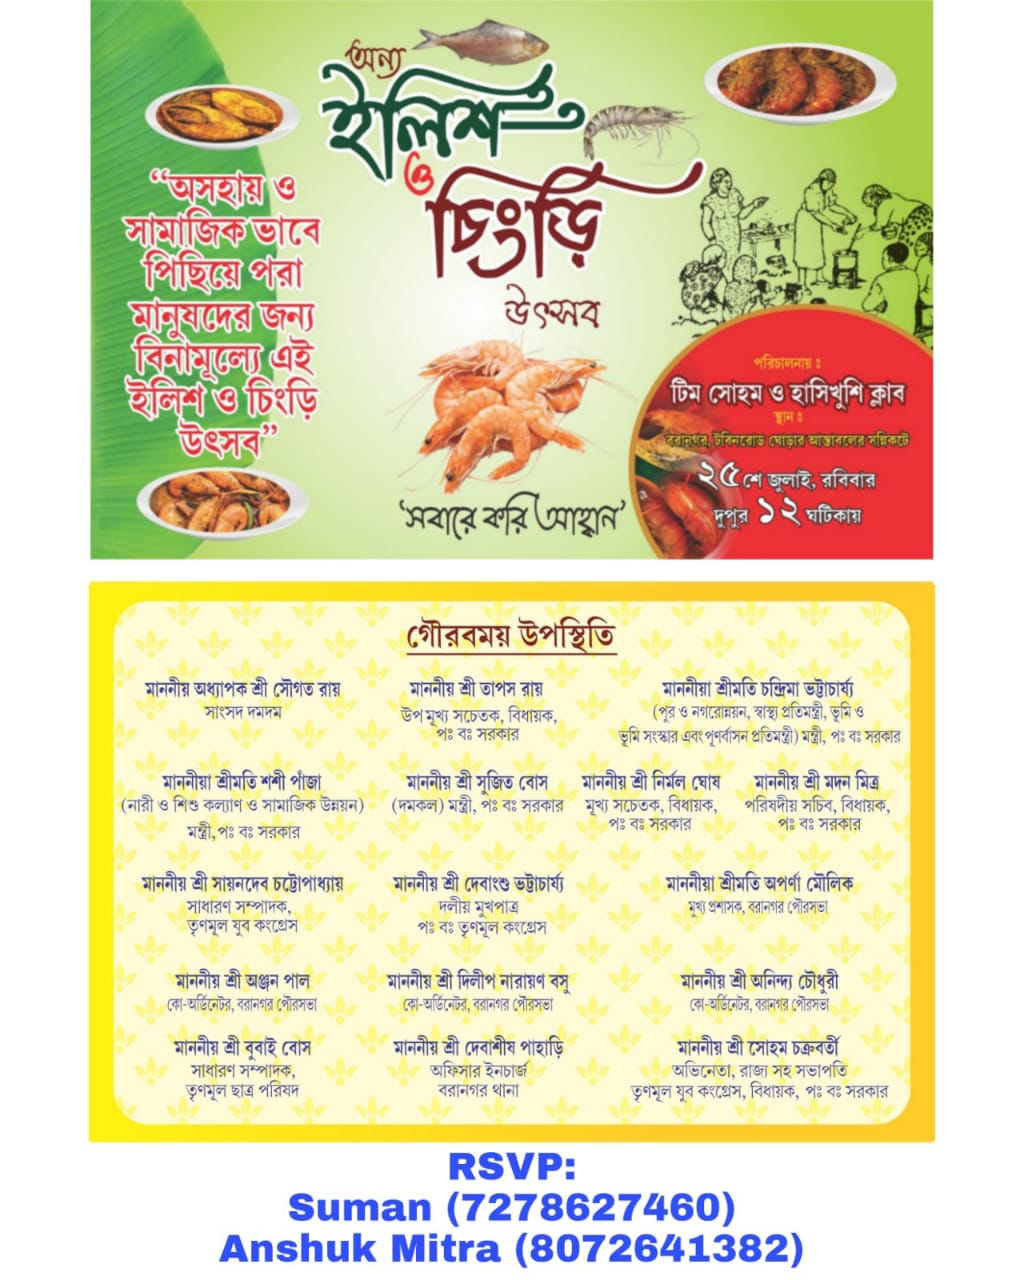 an-innovative-initiative-by-team-soham-and-hasi-khushi-club-another-hilsa-and-shrimp-festival